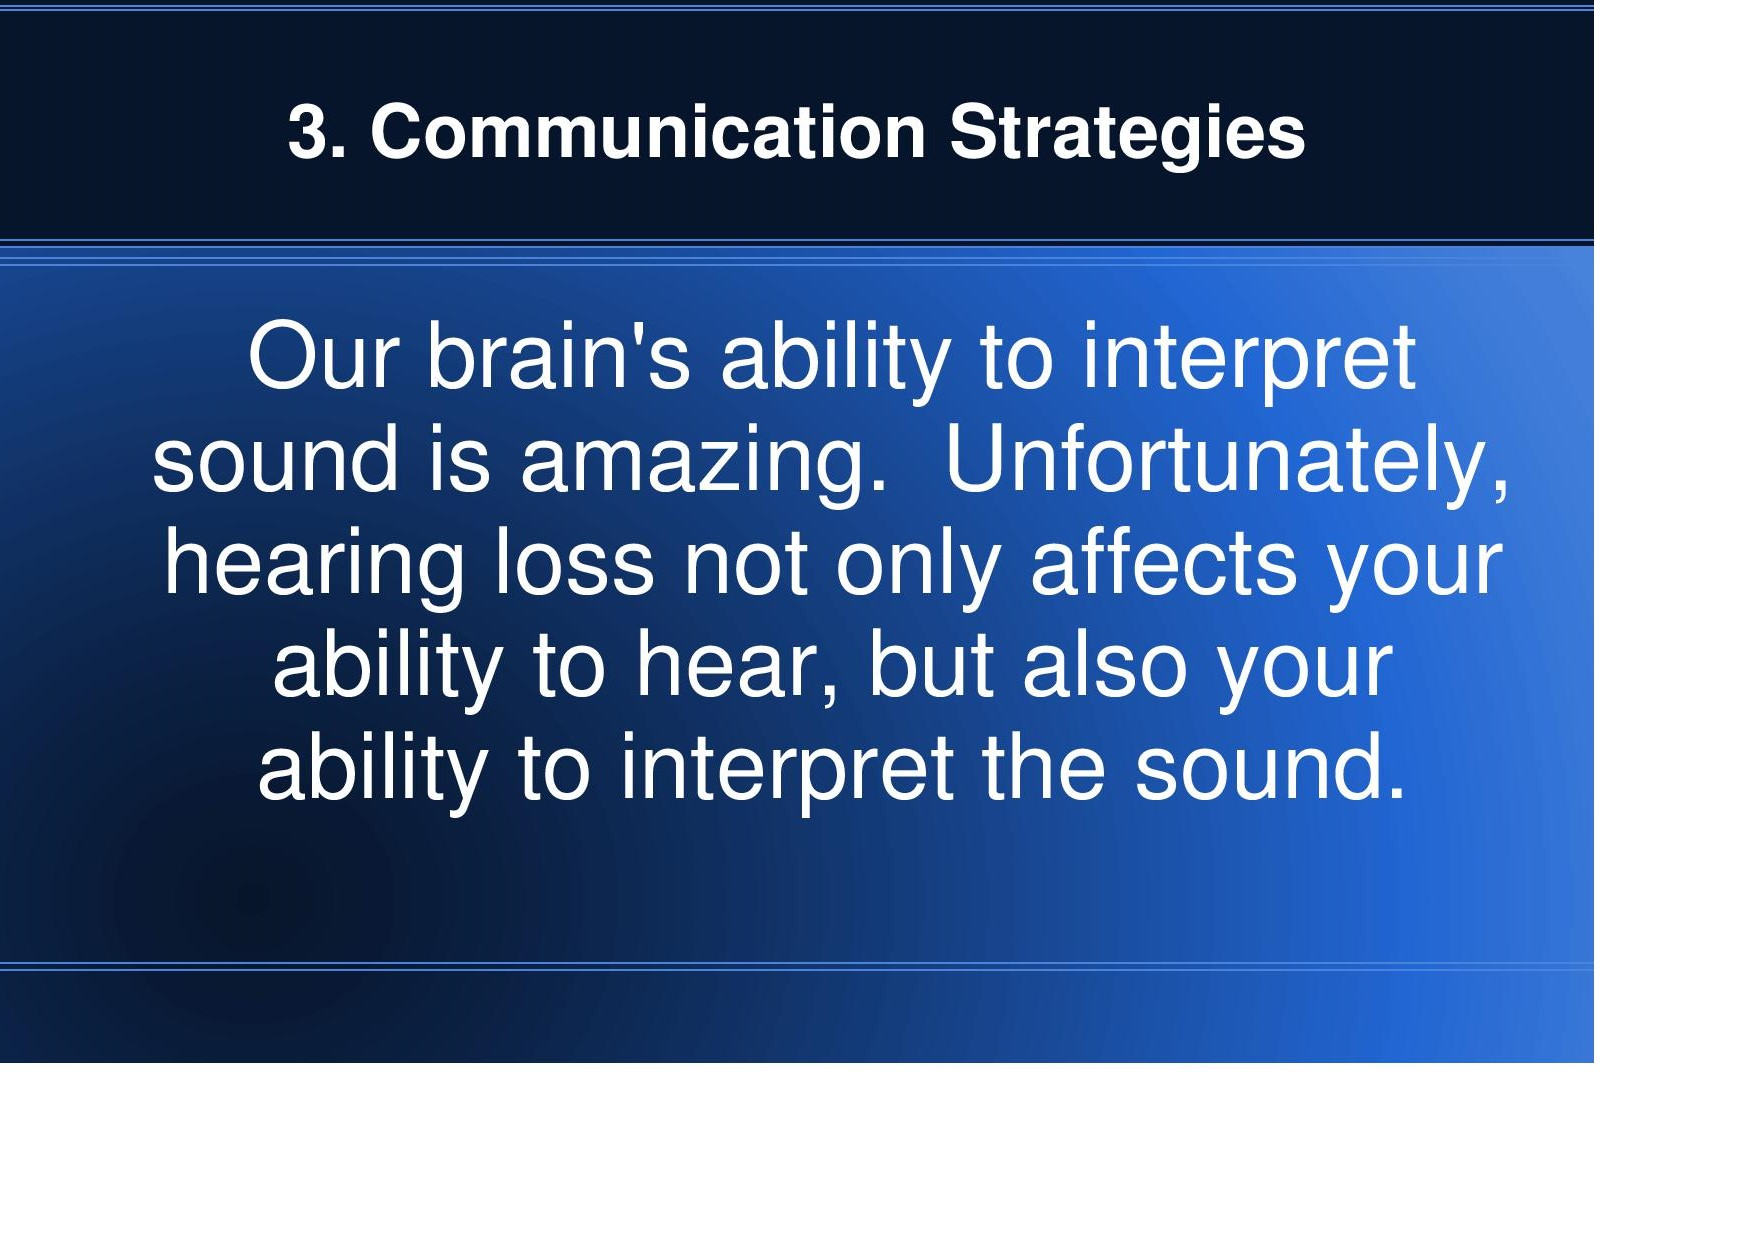 Web 3 ways to combat hearing loss11.jpg